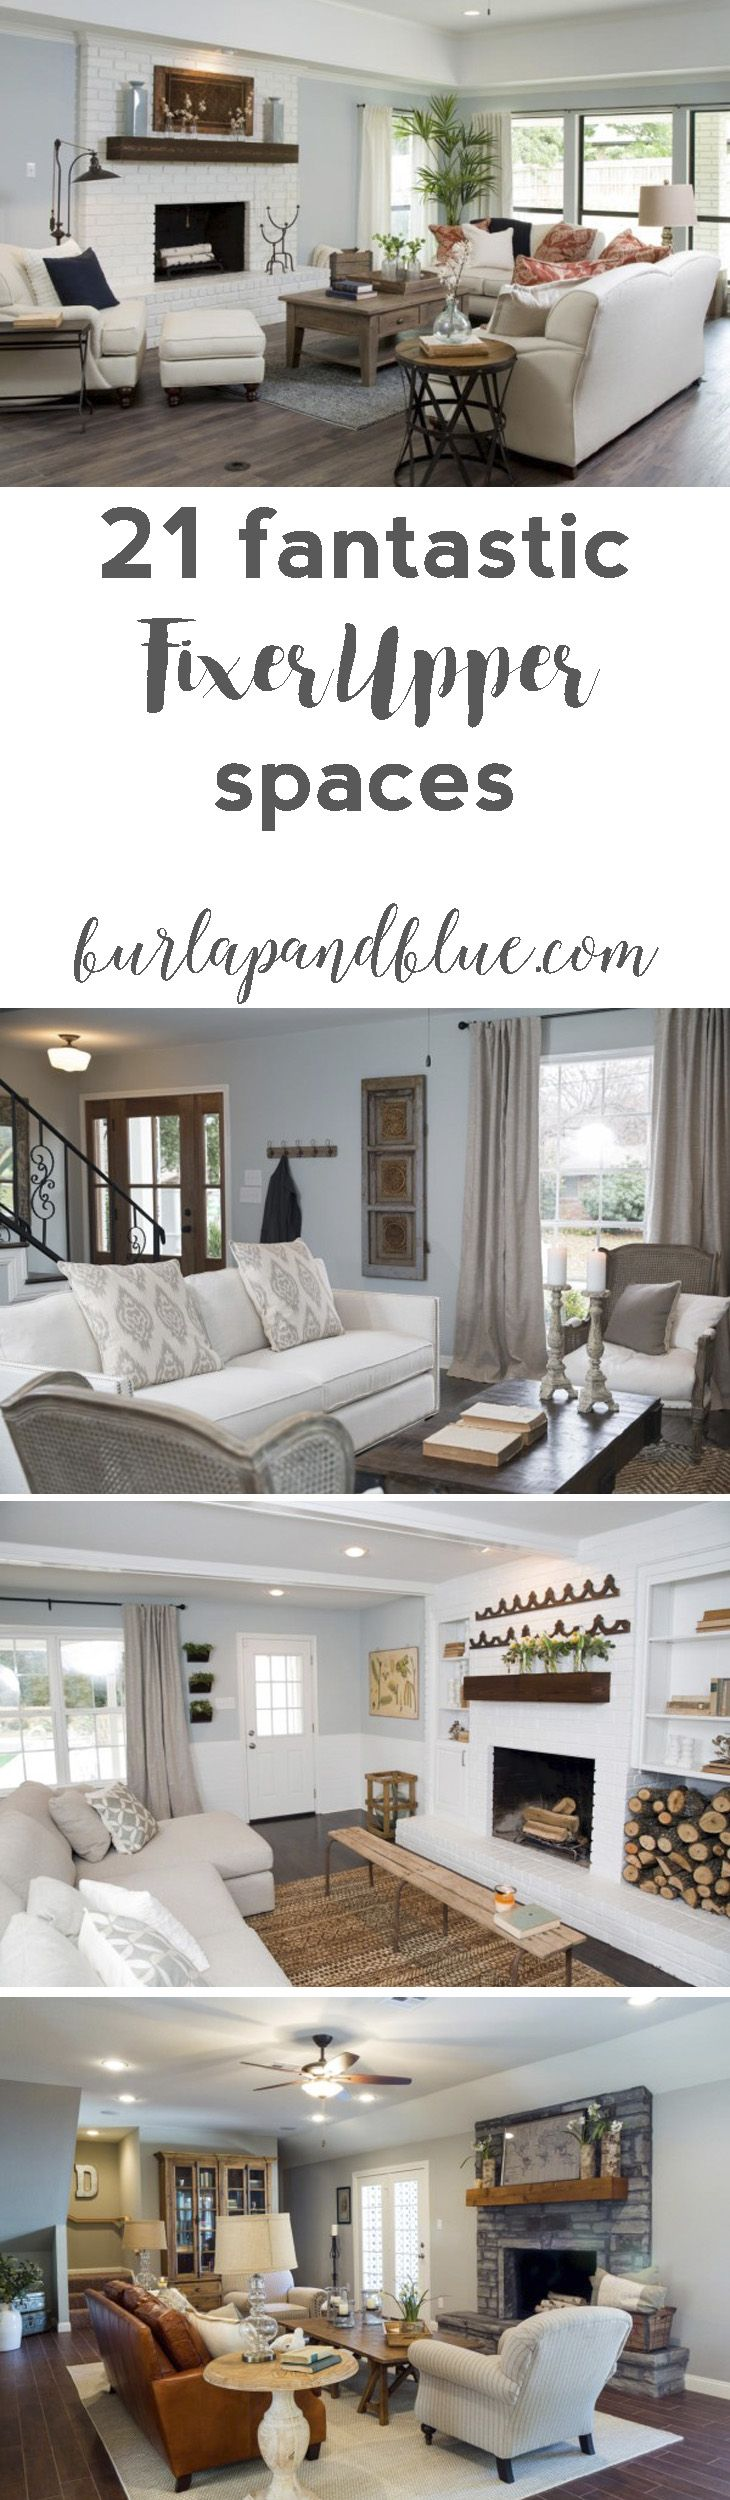 fixer upper dining rooms living rooms and kitchens get the fixer upper look chip jo. Black Bedroom Furniture Sets. Home Design Ideas